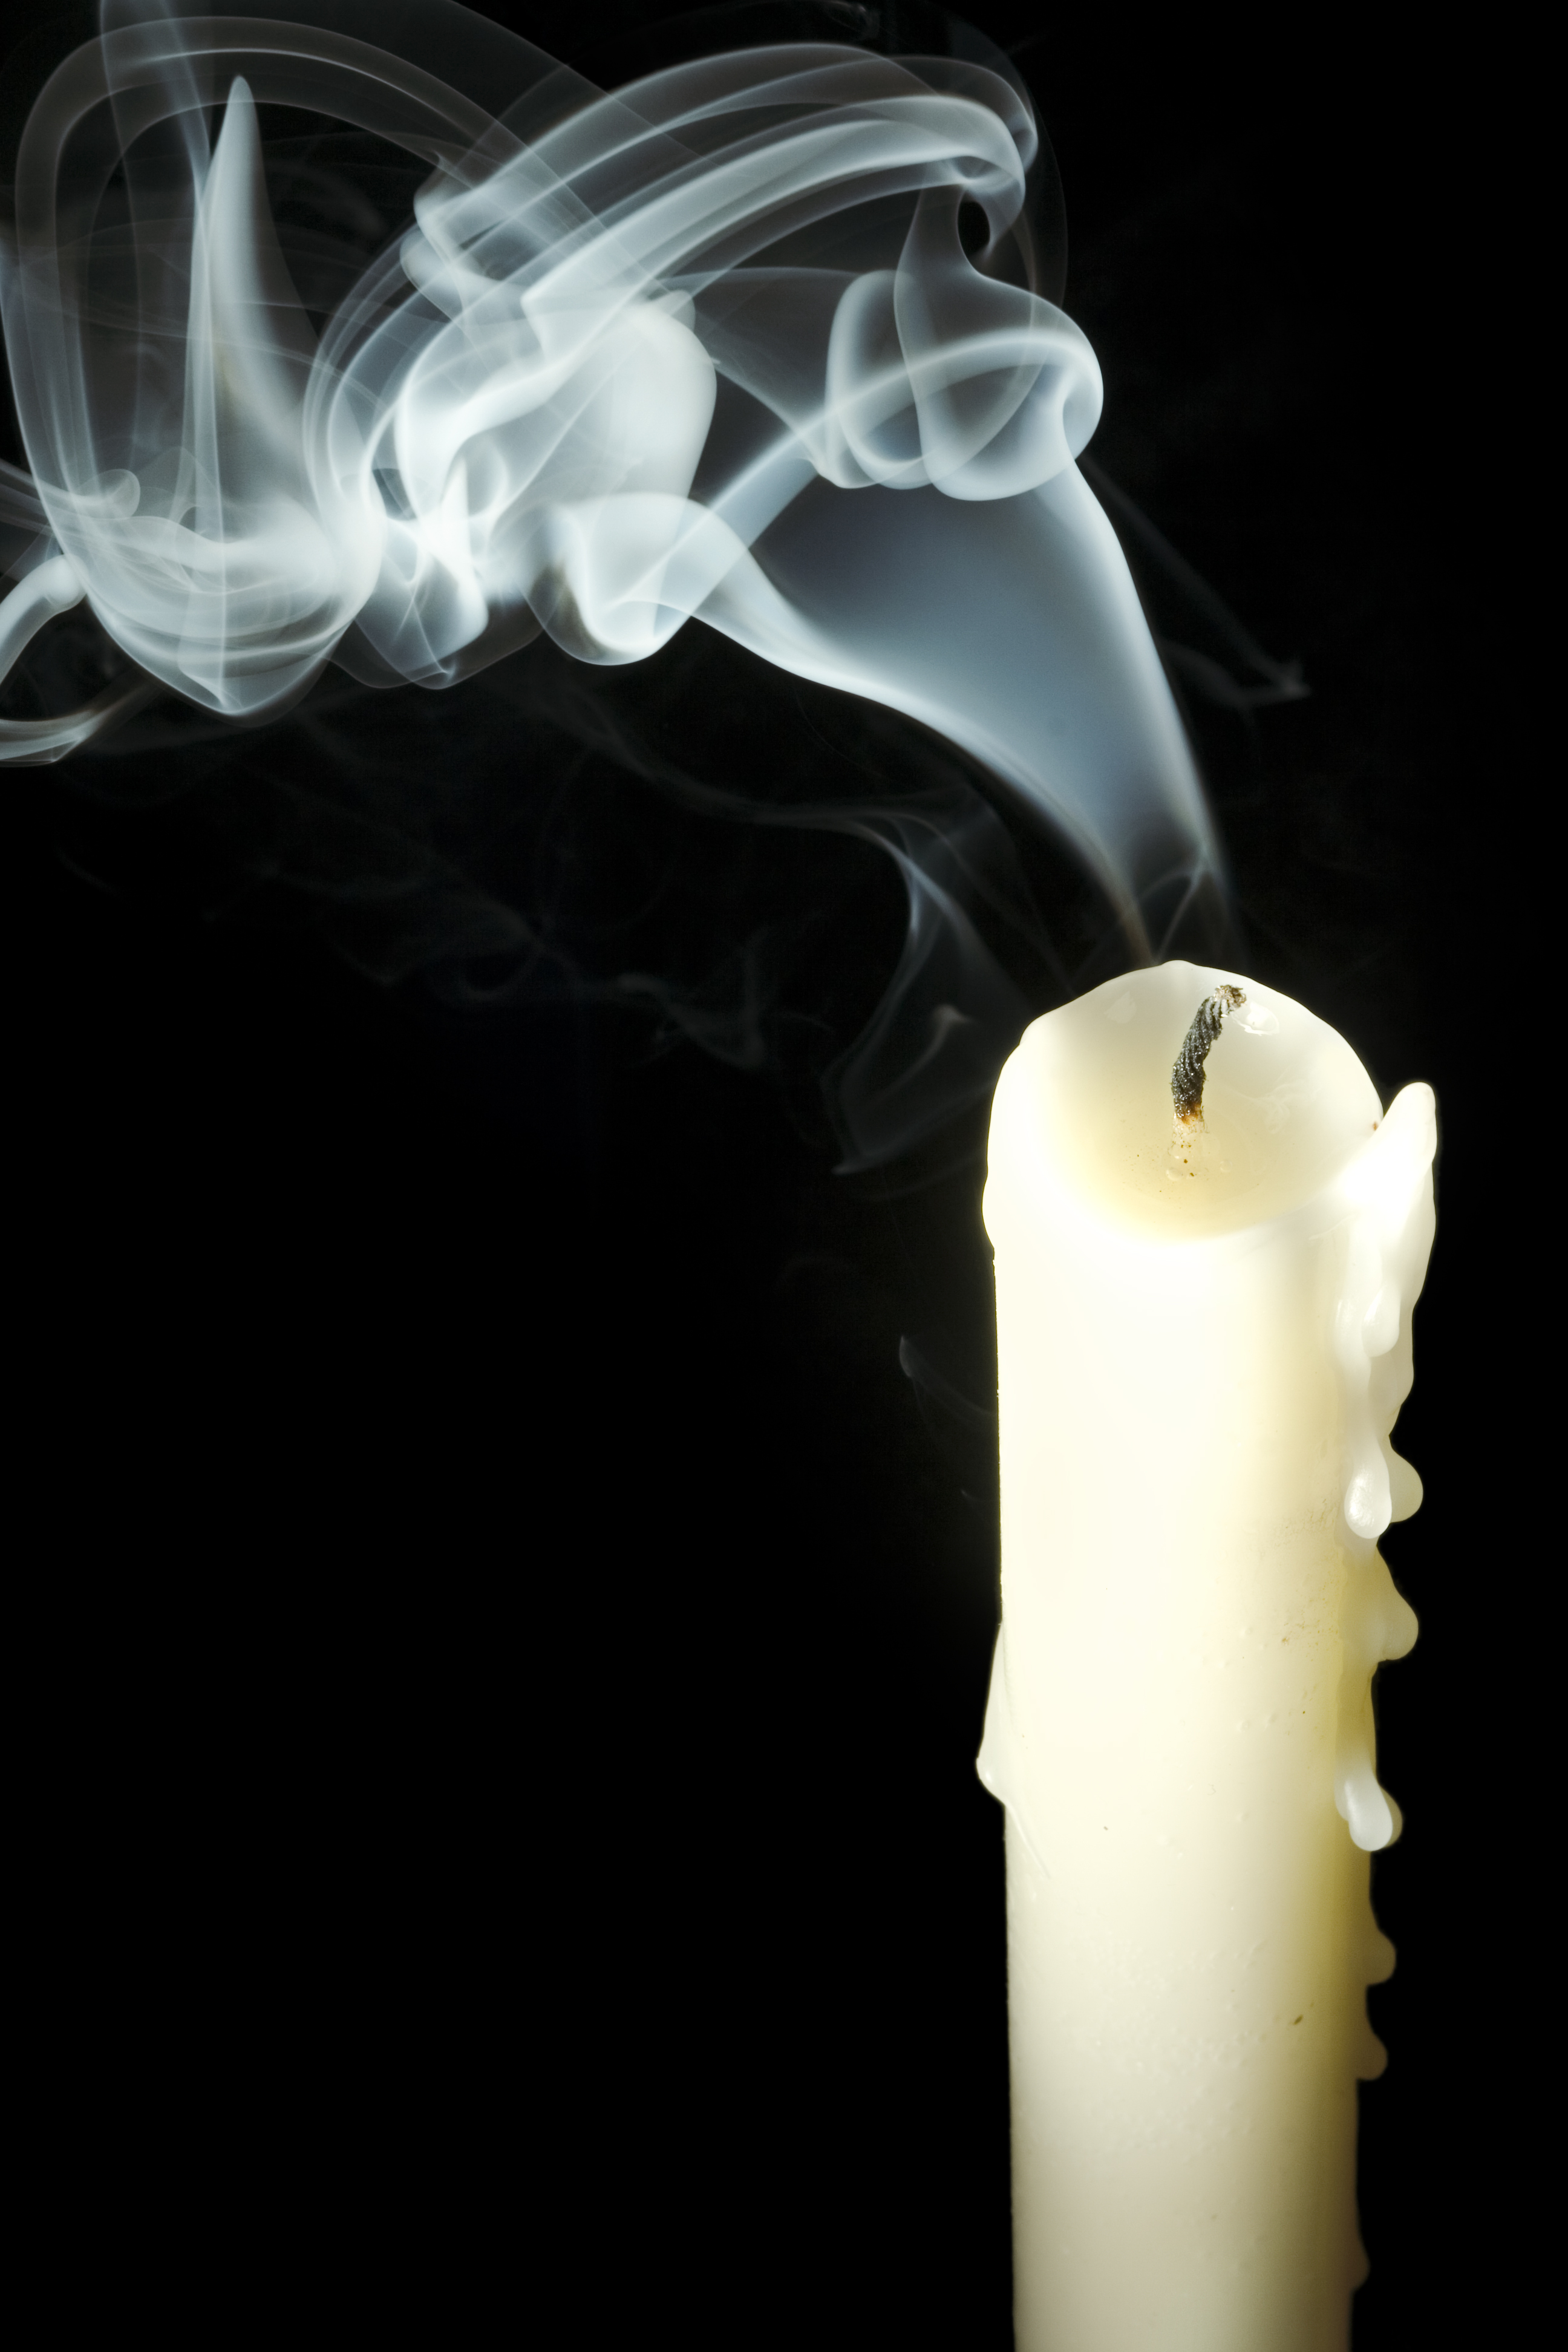 candle, Burning, Fire, Light, Smoke, HQ Photo